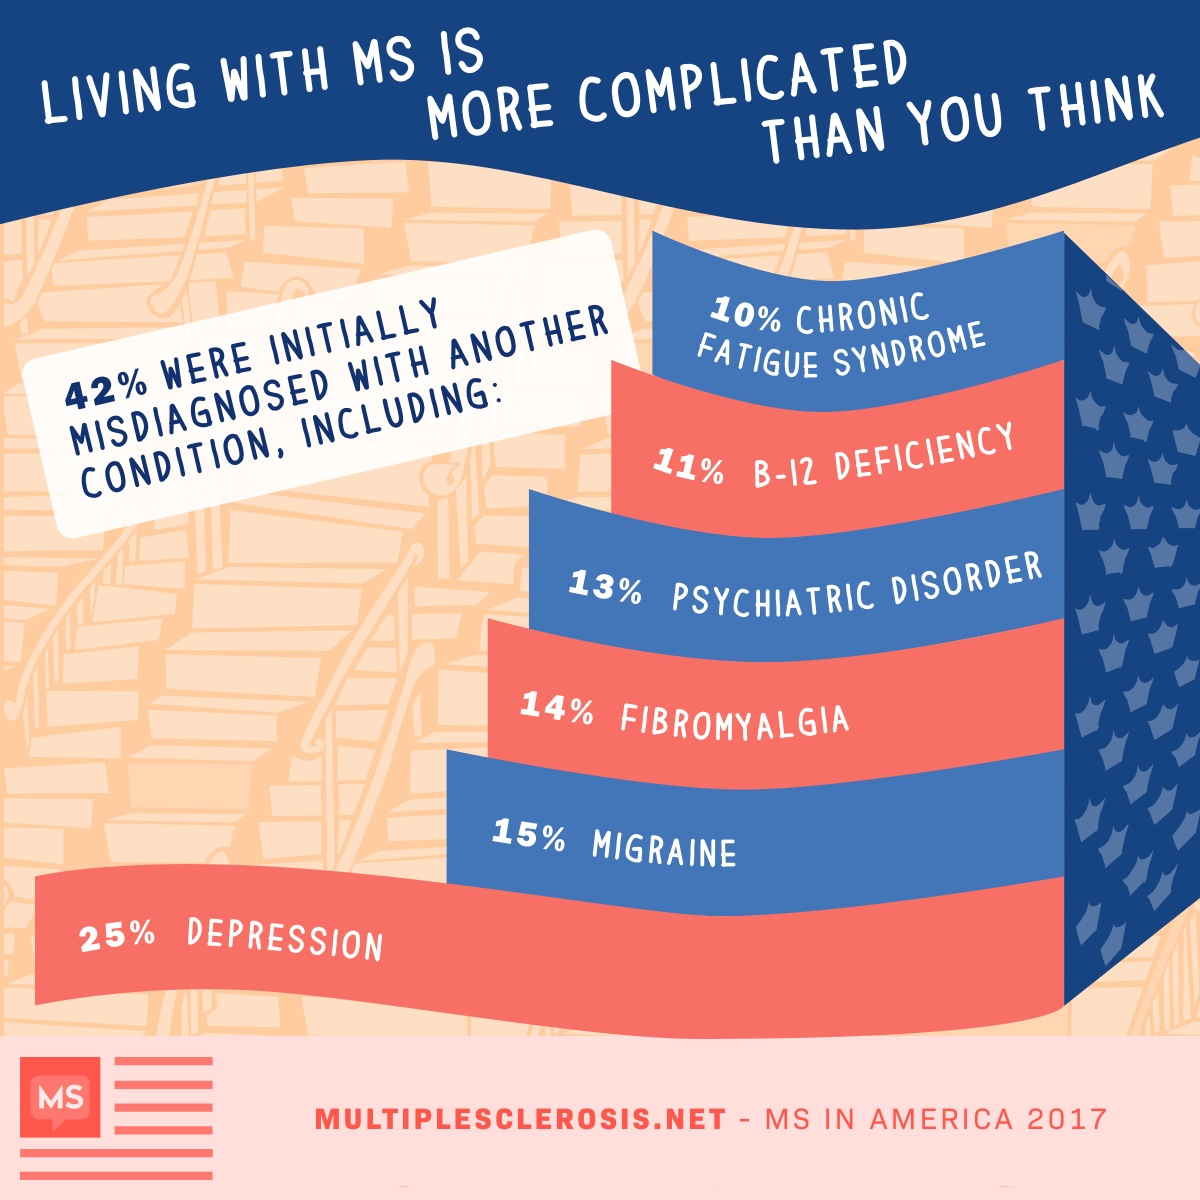 MS is More Complicated Than You Think | MultipleSclerosis net